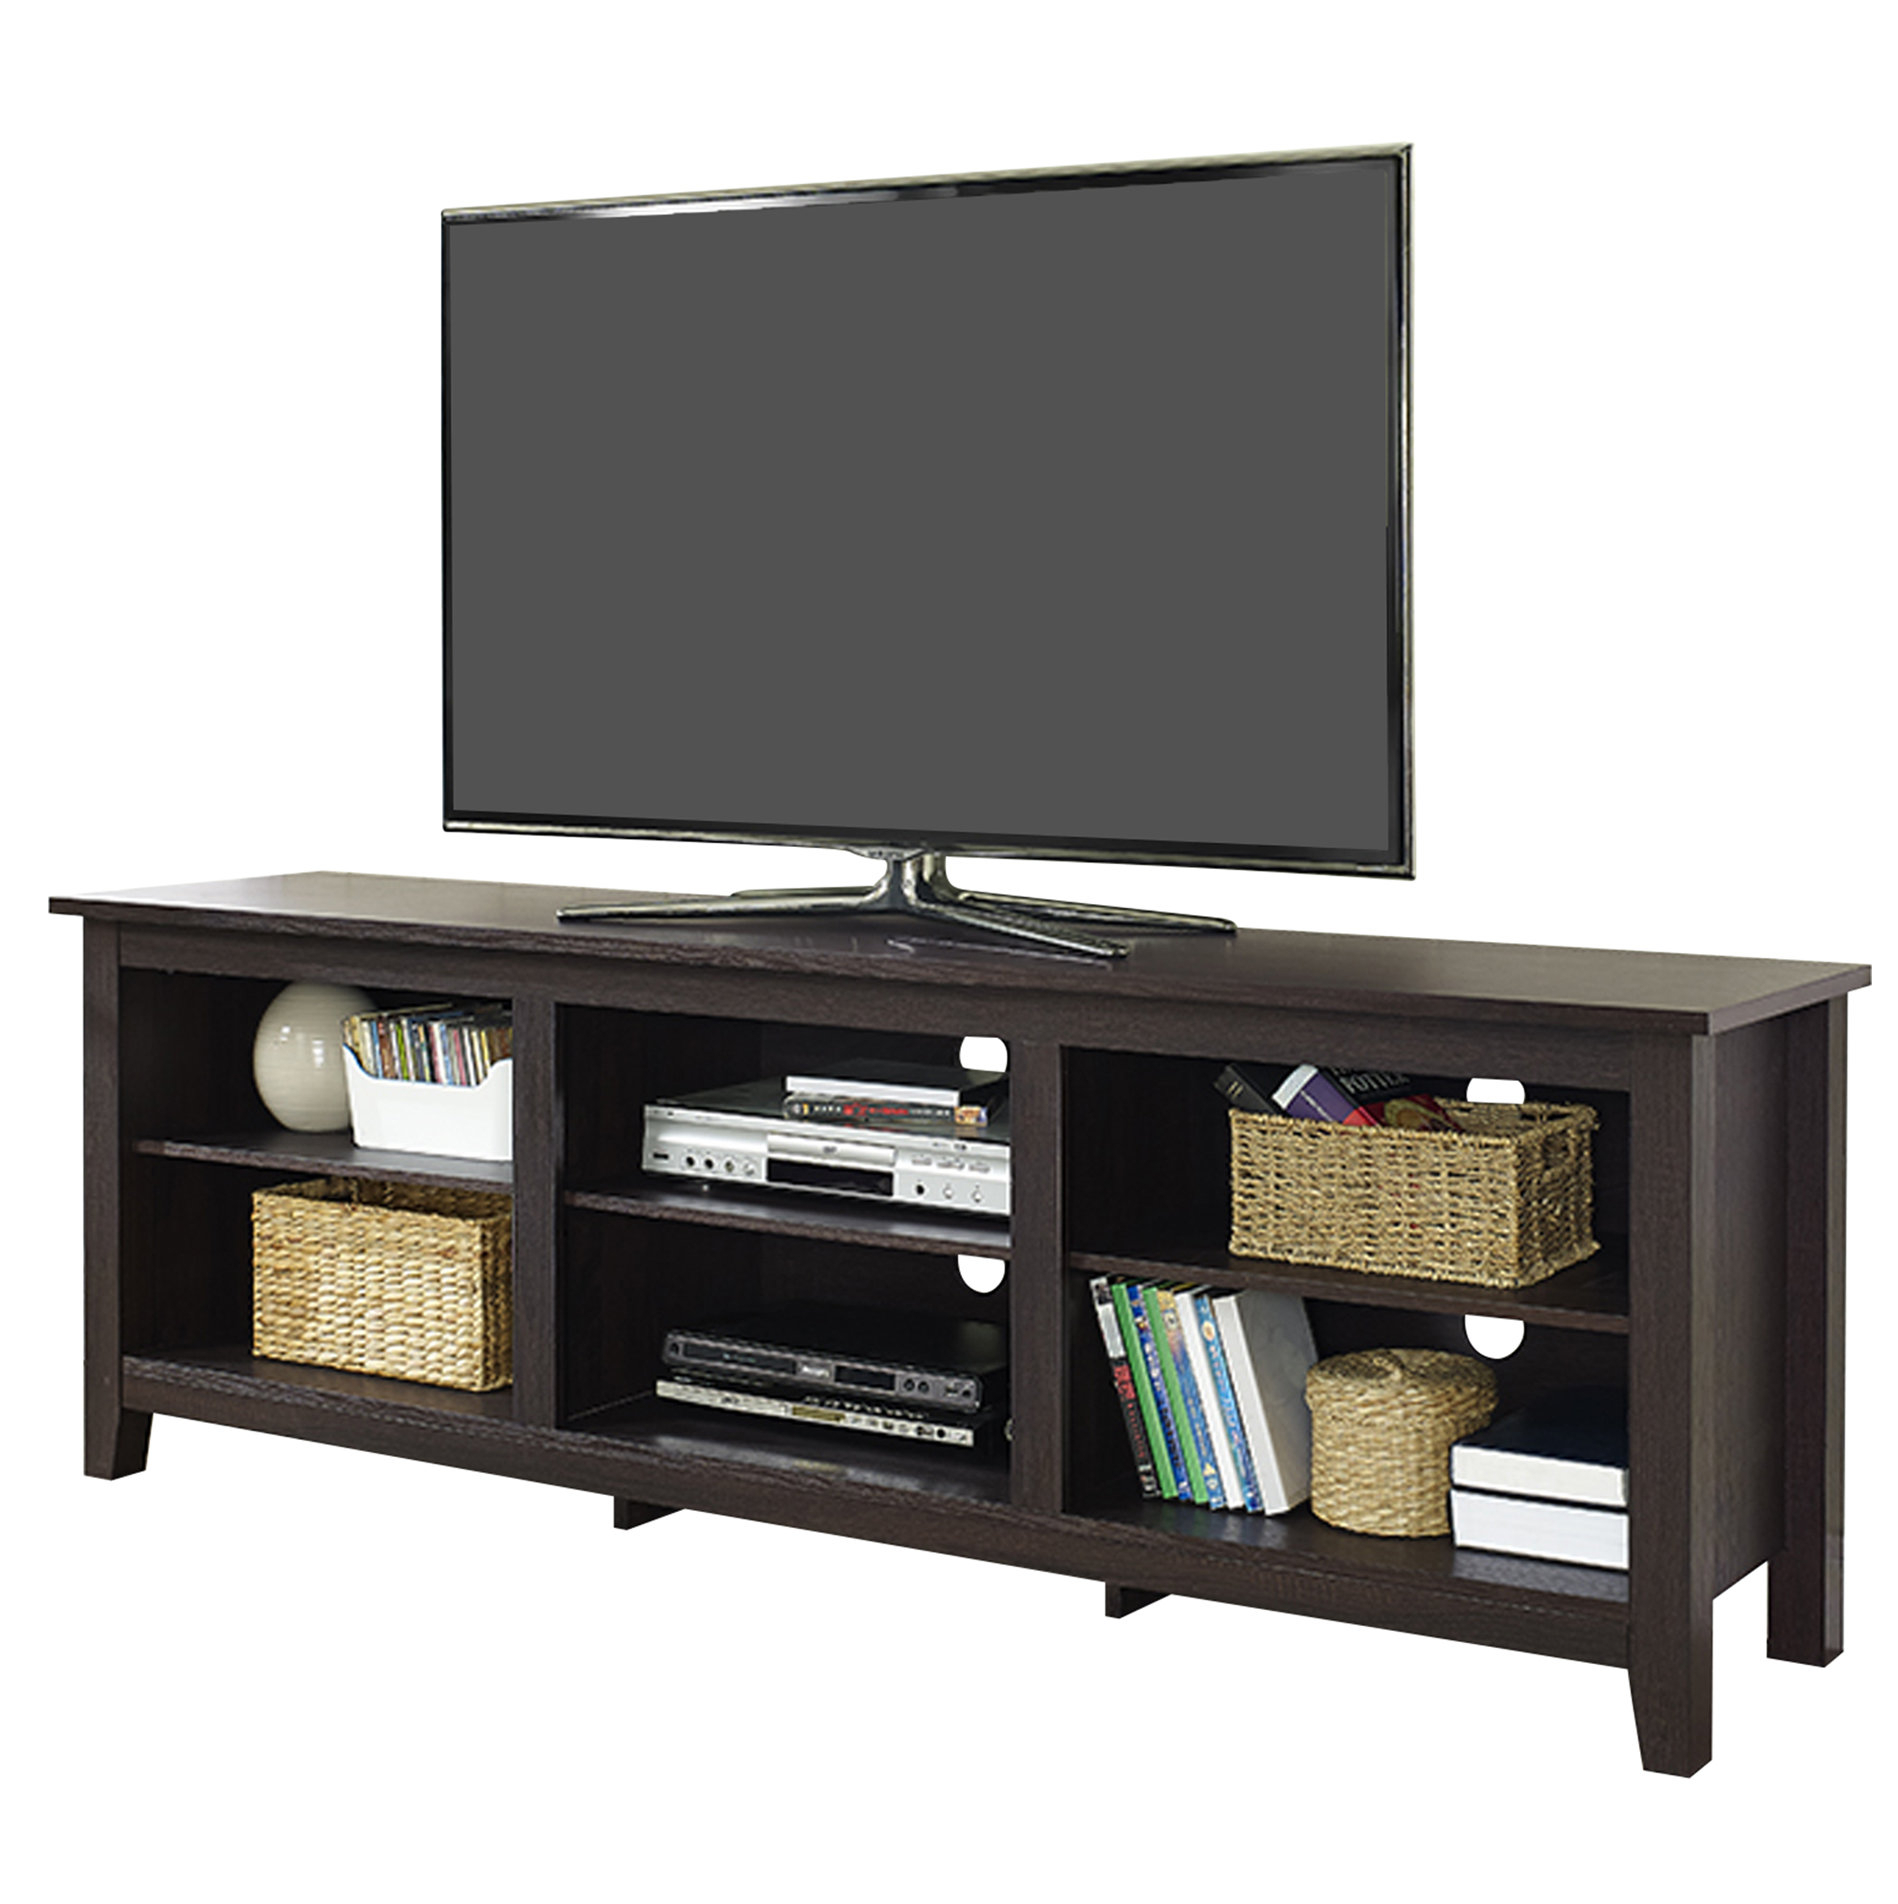 Tv Stands | Joss & Main Within Annabelle Cream 70 Inch Tv Stands (View 6 of 30)